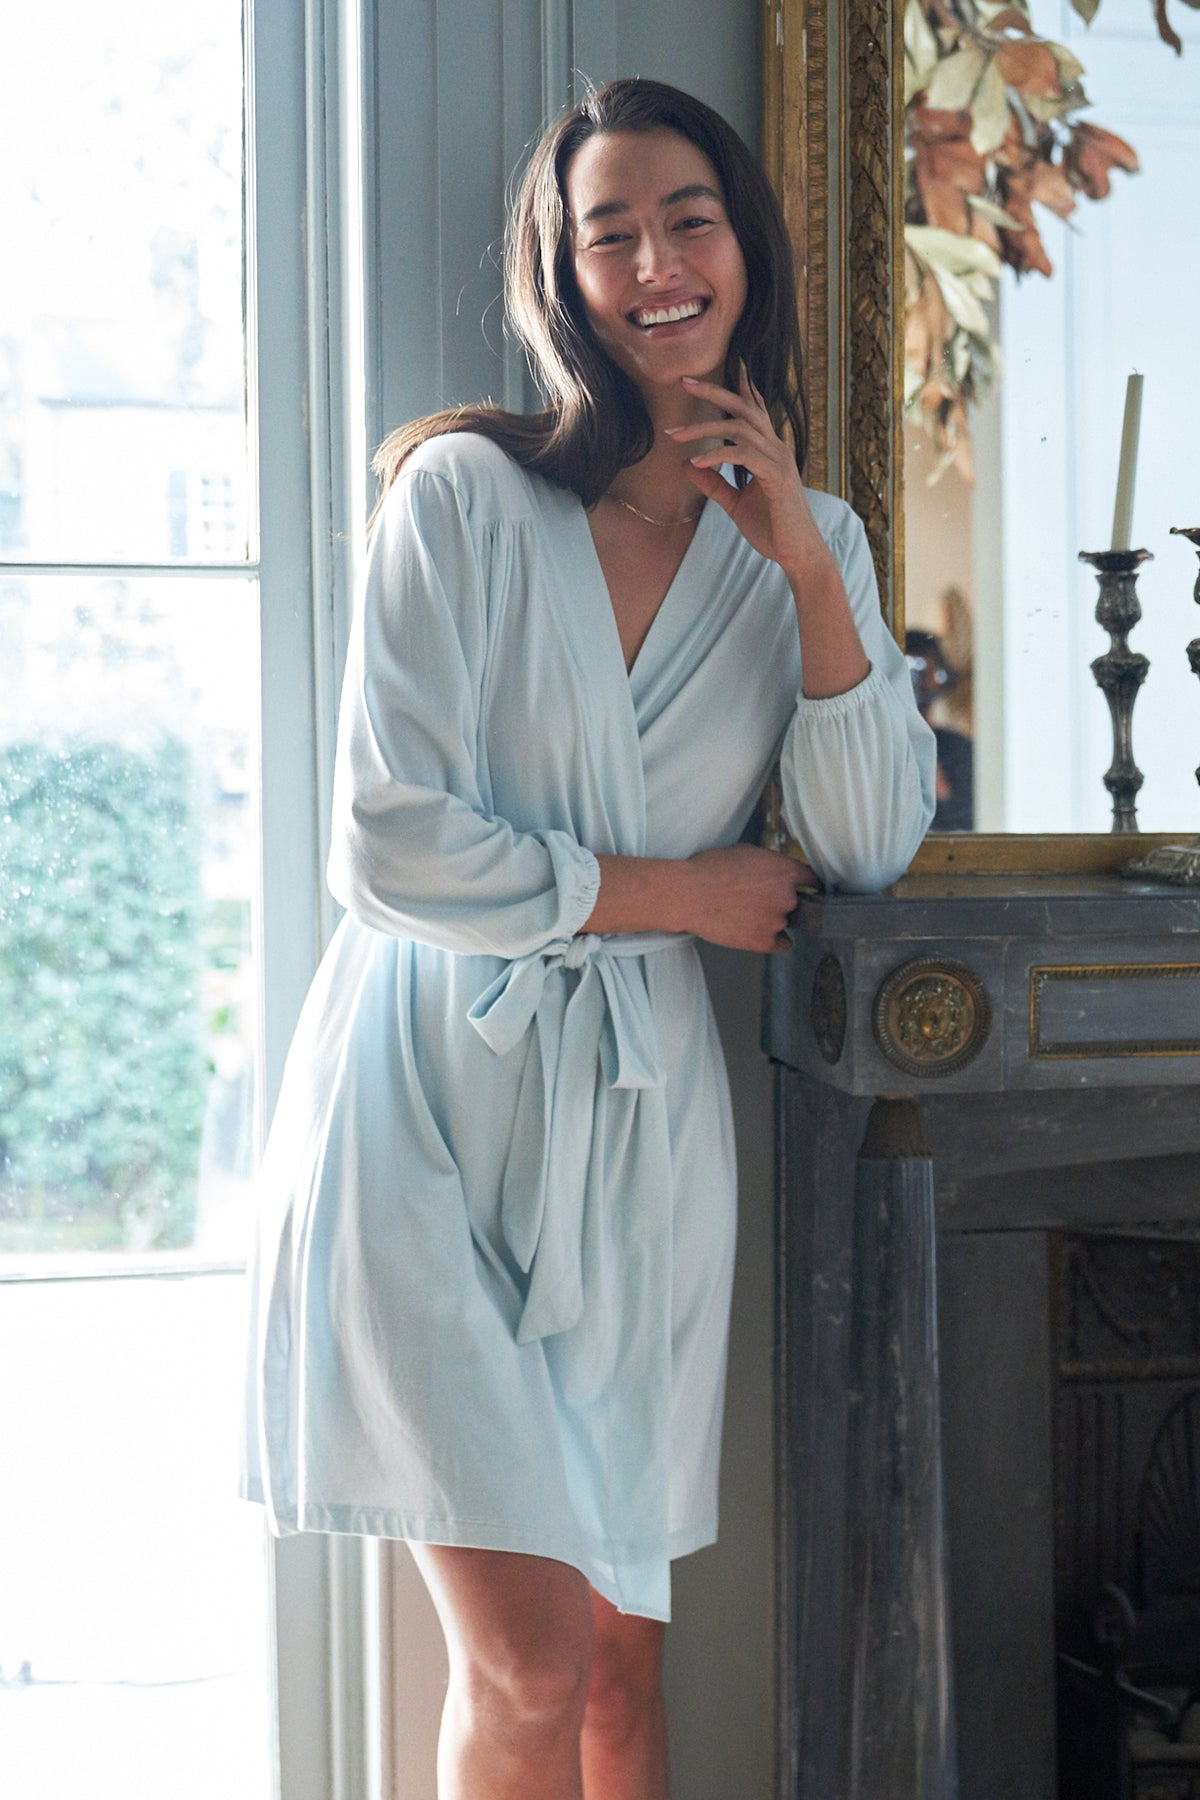 DreamKnit Robe in Coastal Blue